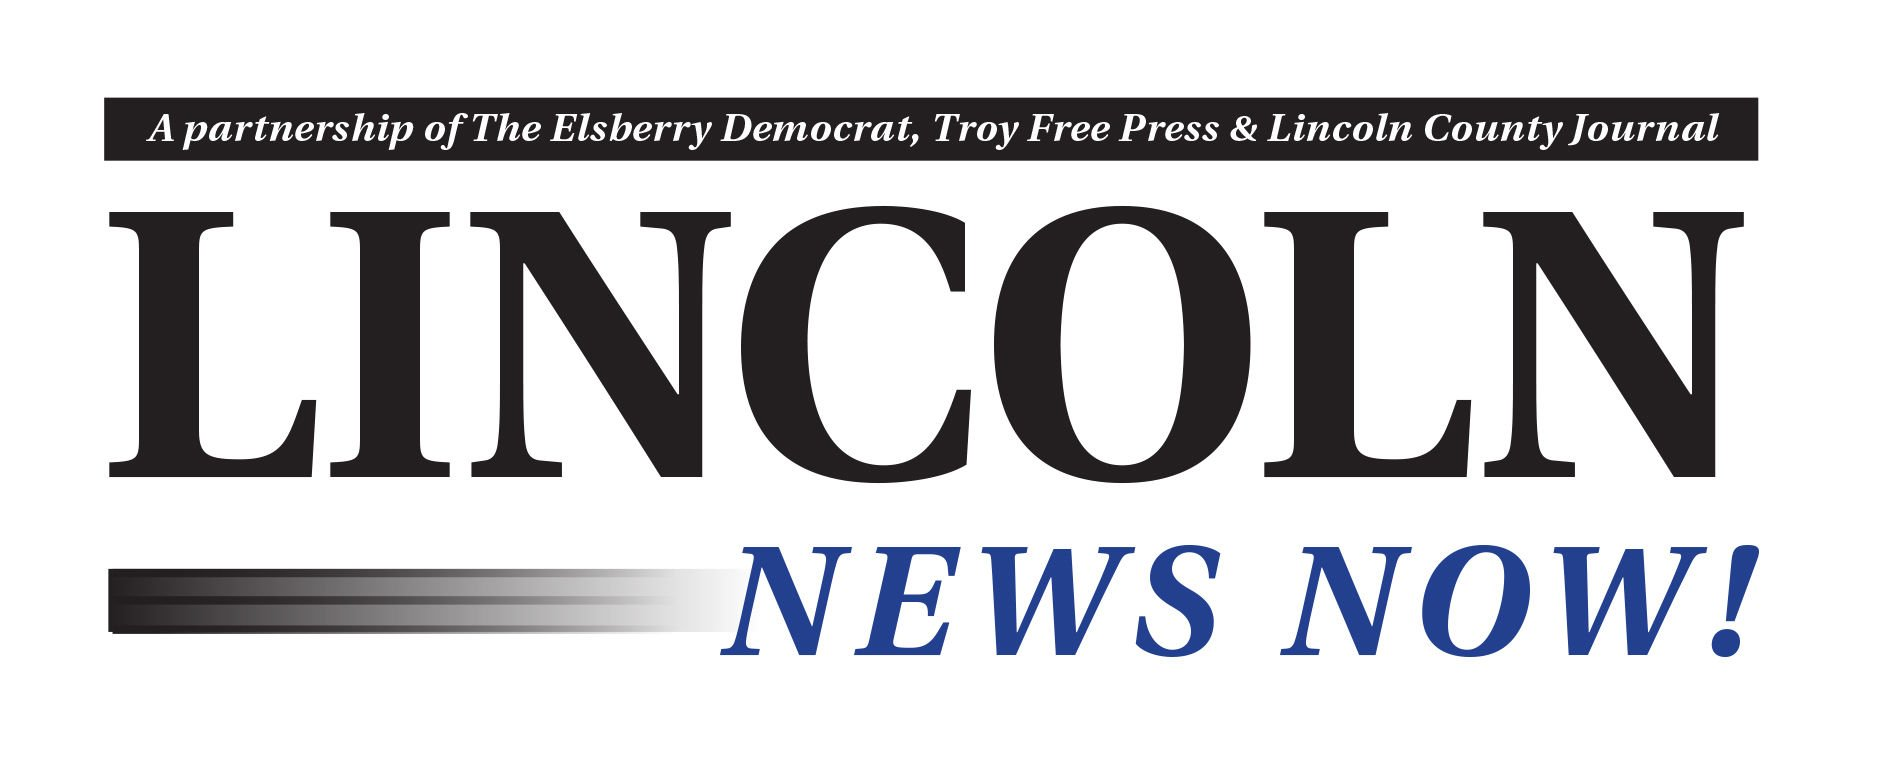 lincolnnewsnow com | A partnership of the Troy Free Press